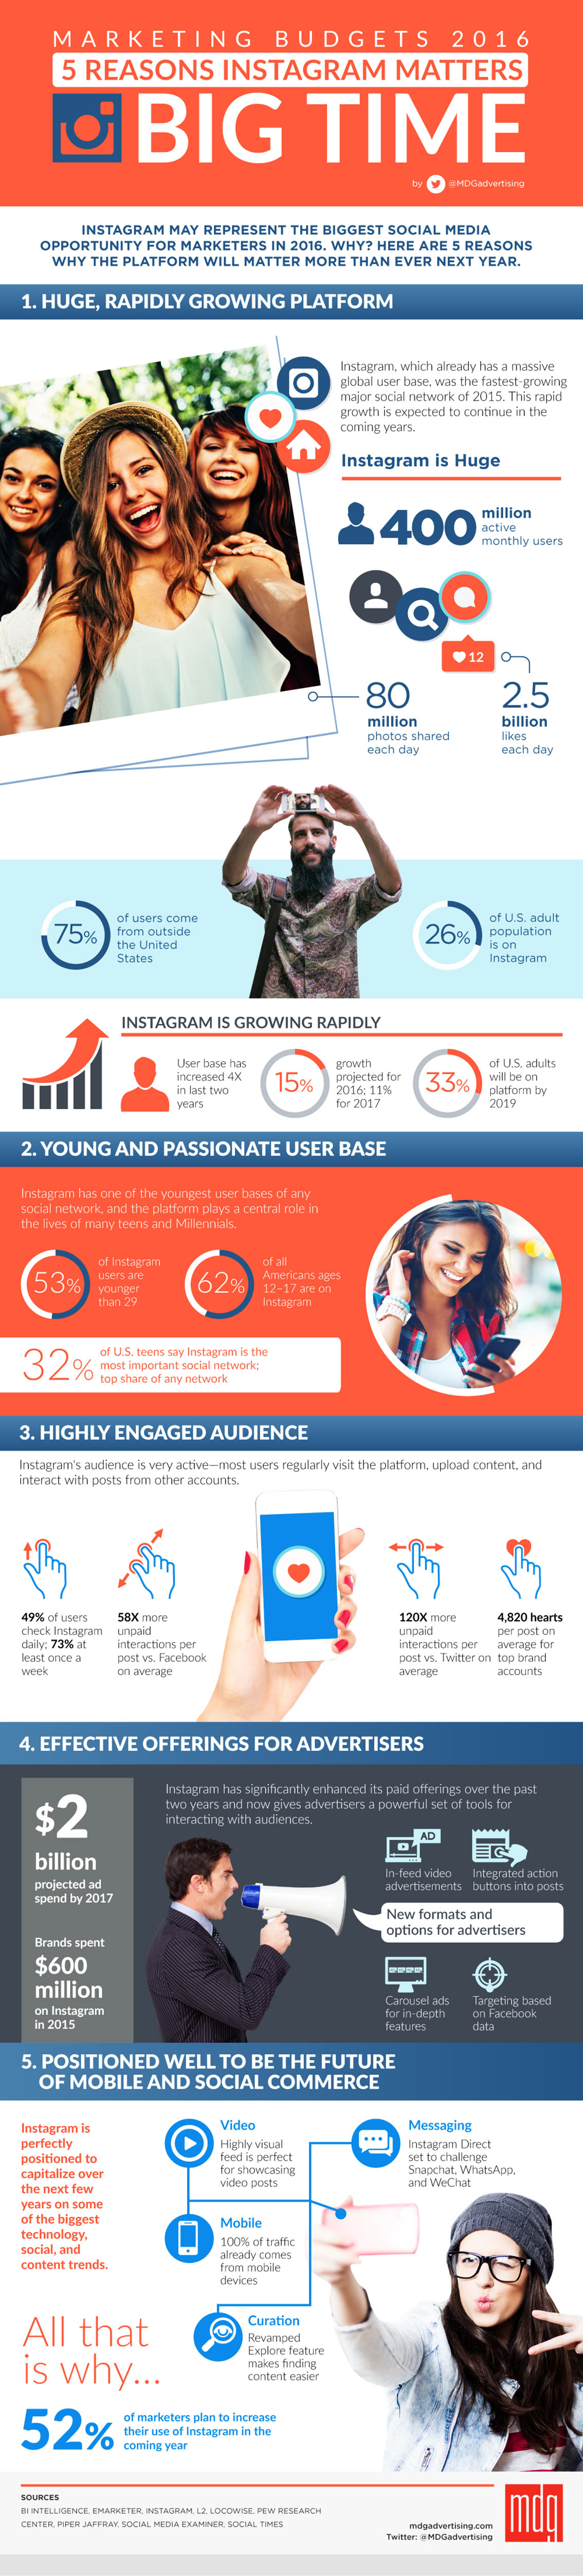 Reasons Why Instagram Matters for Business Marketers Infographic